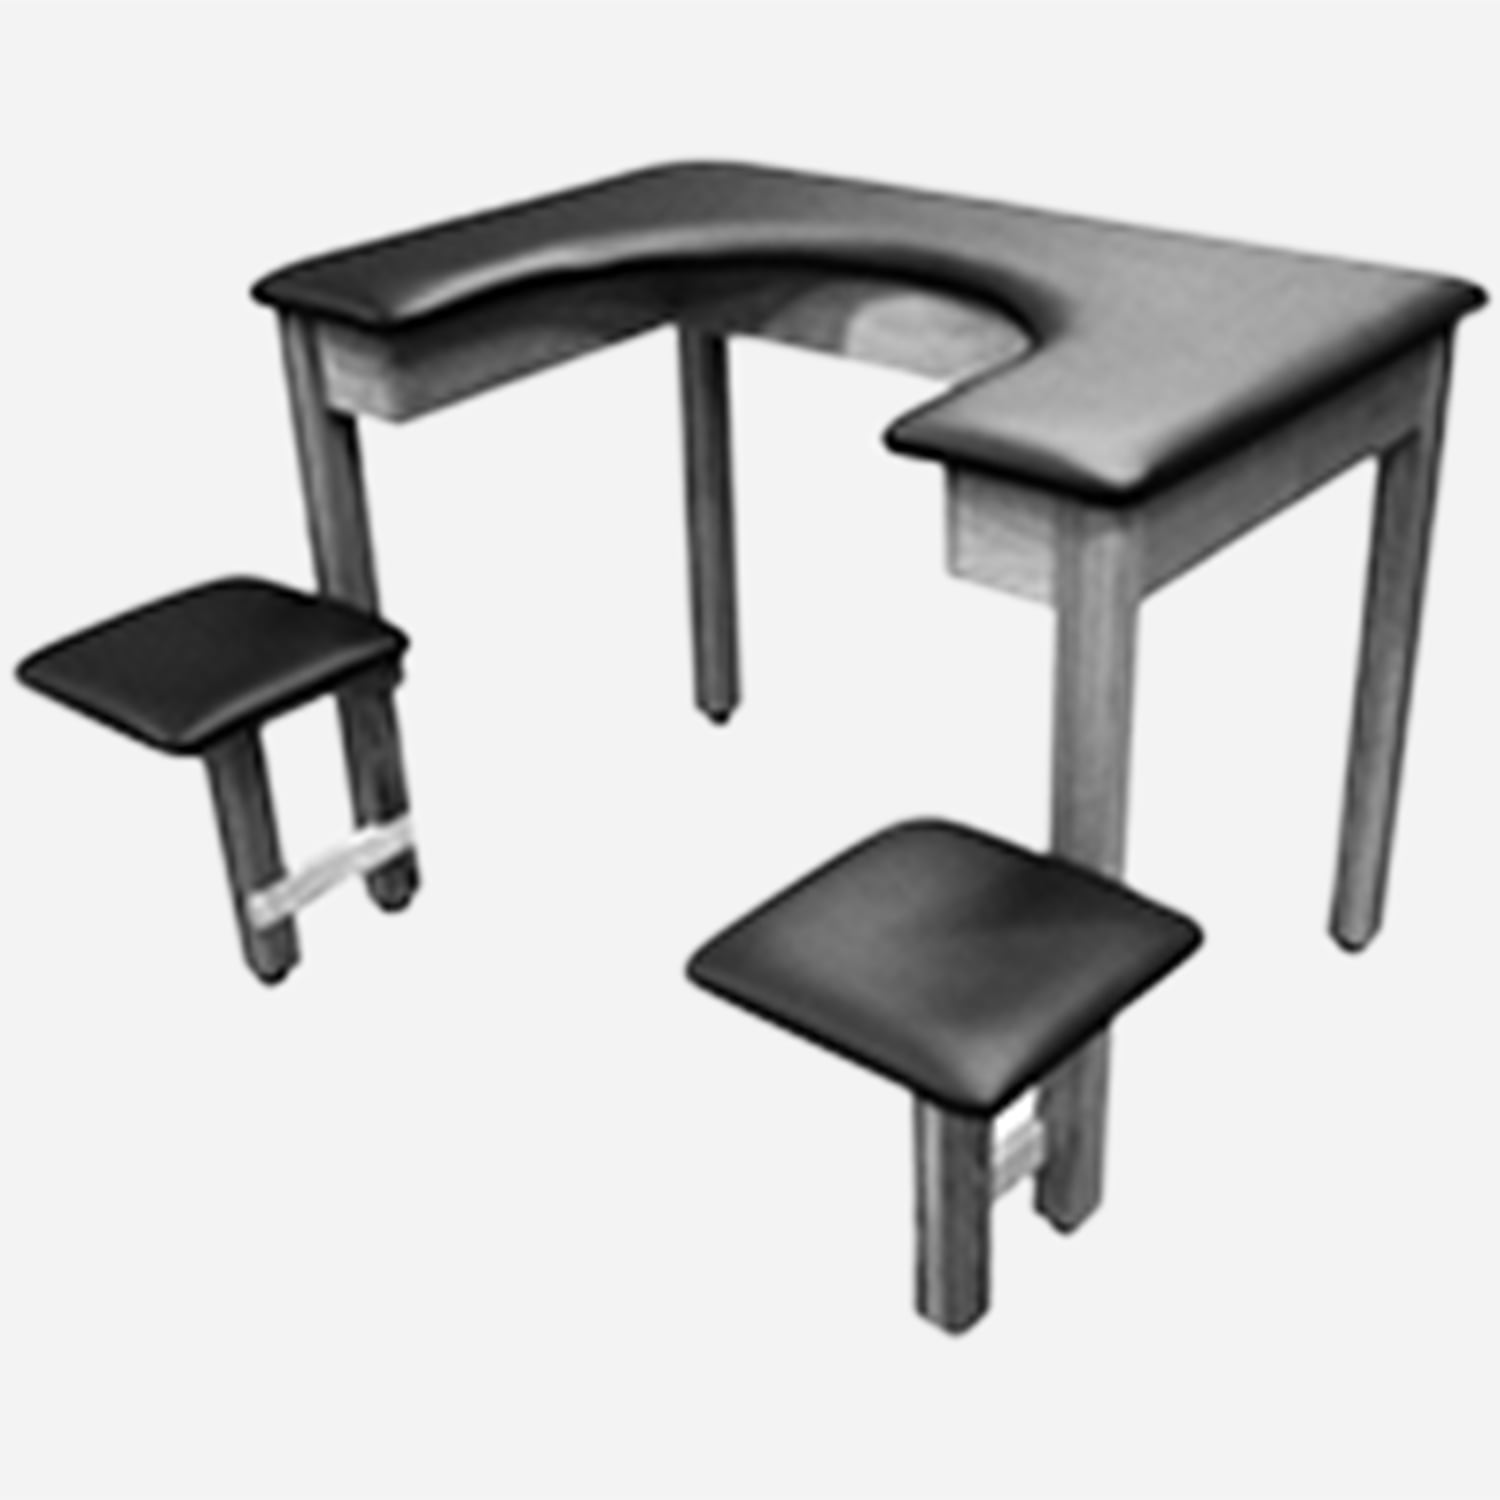 Combination Table-Chair for Whirlpools